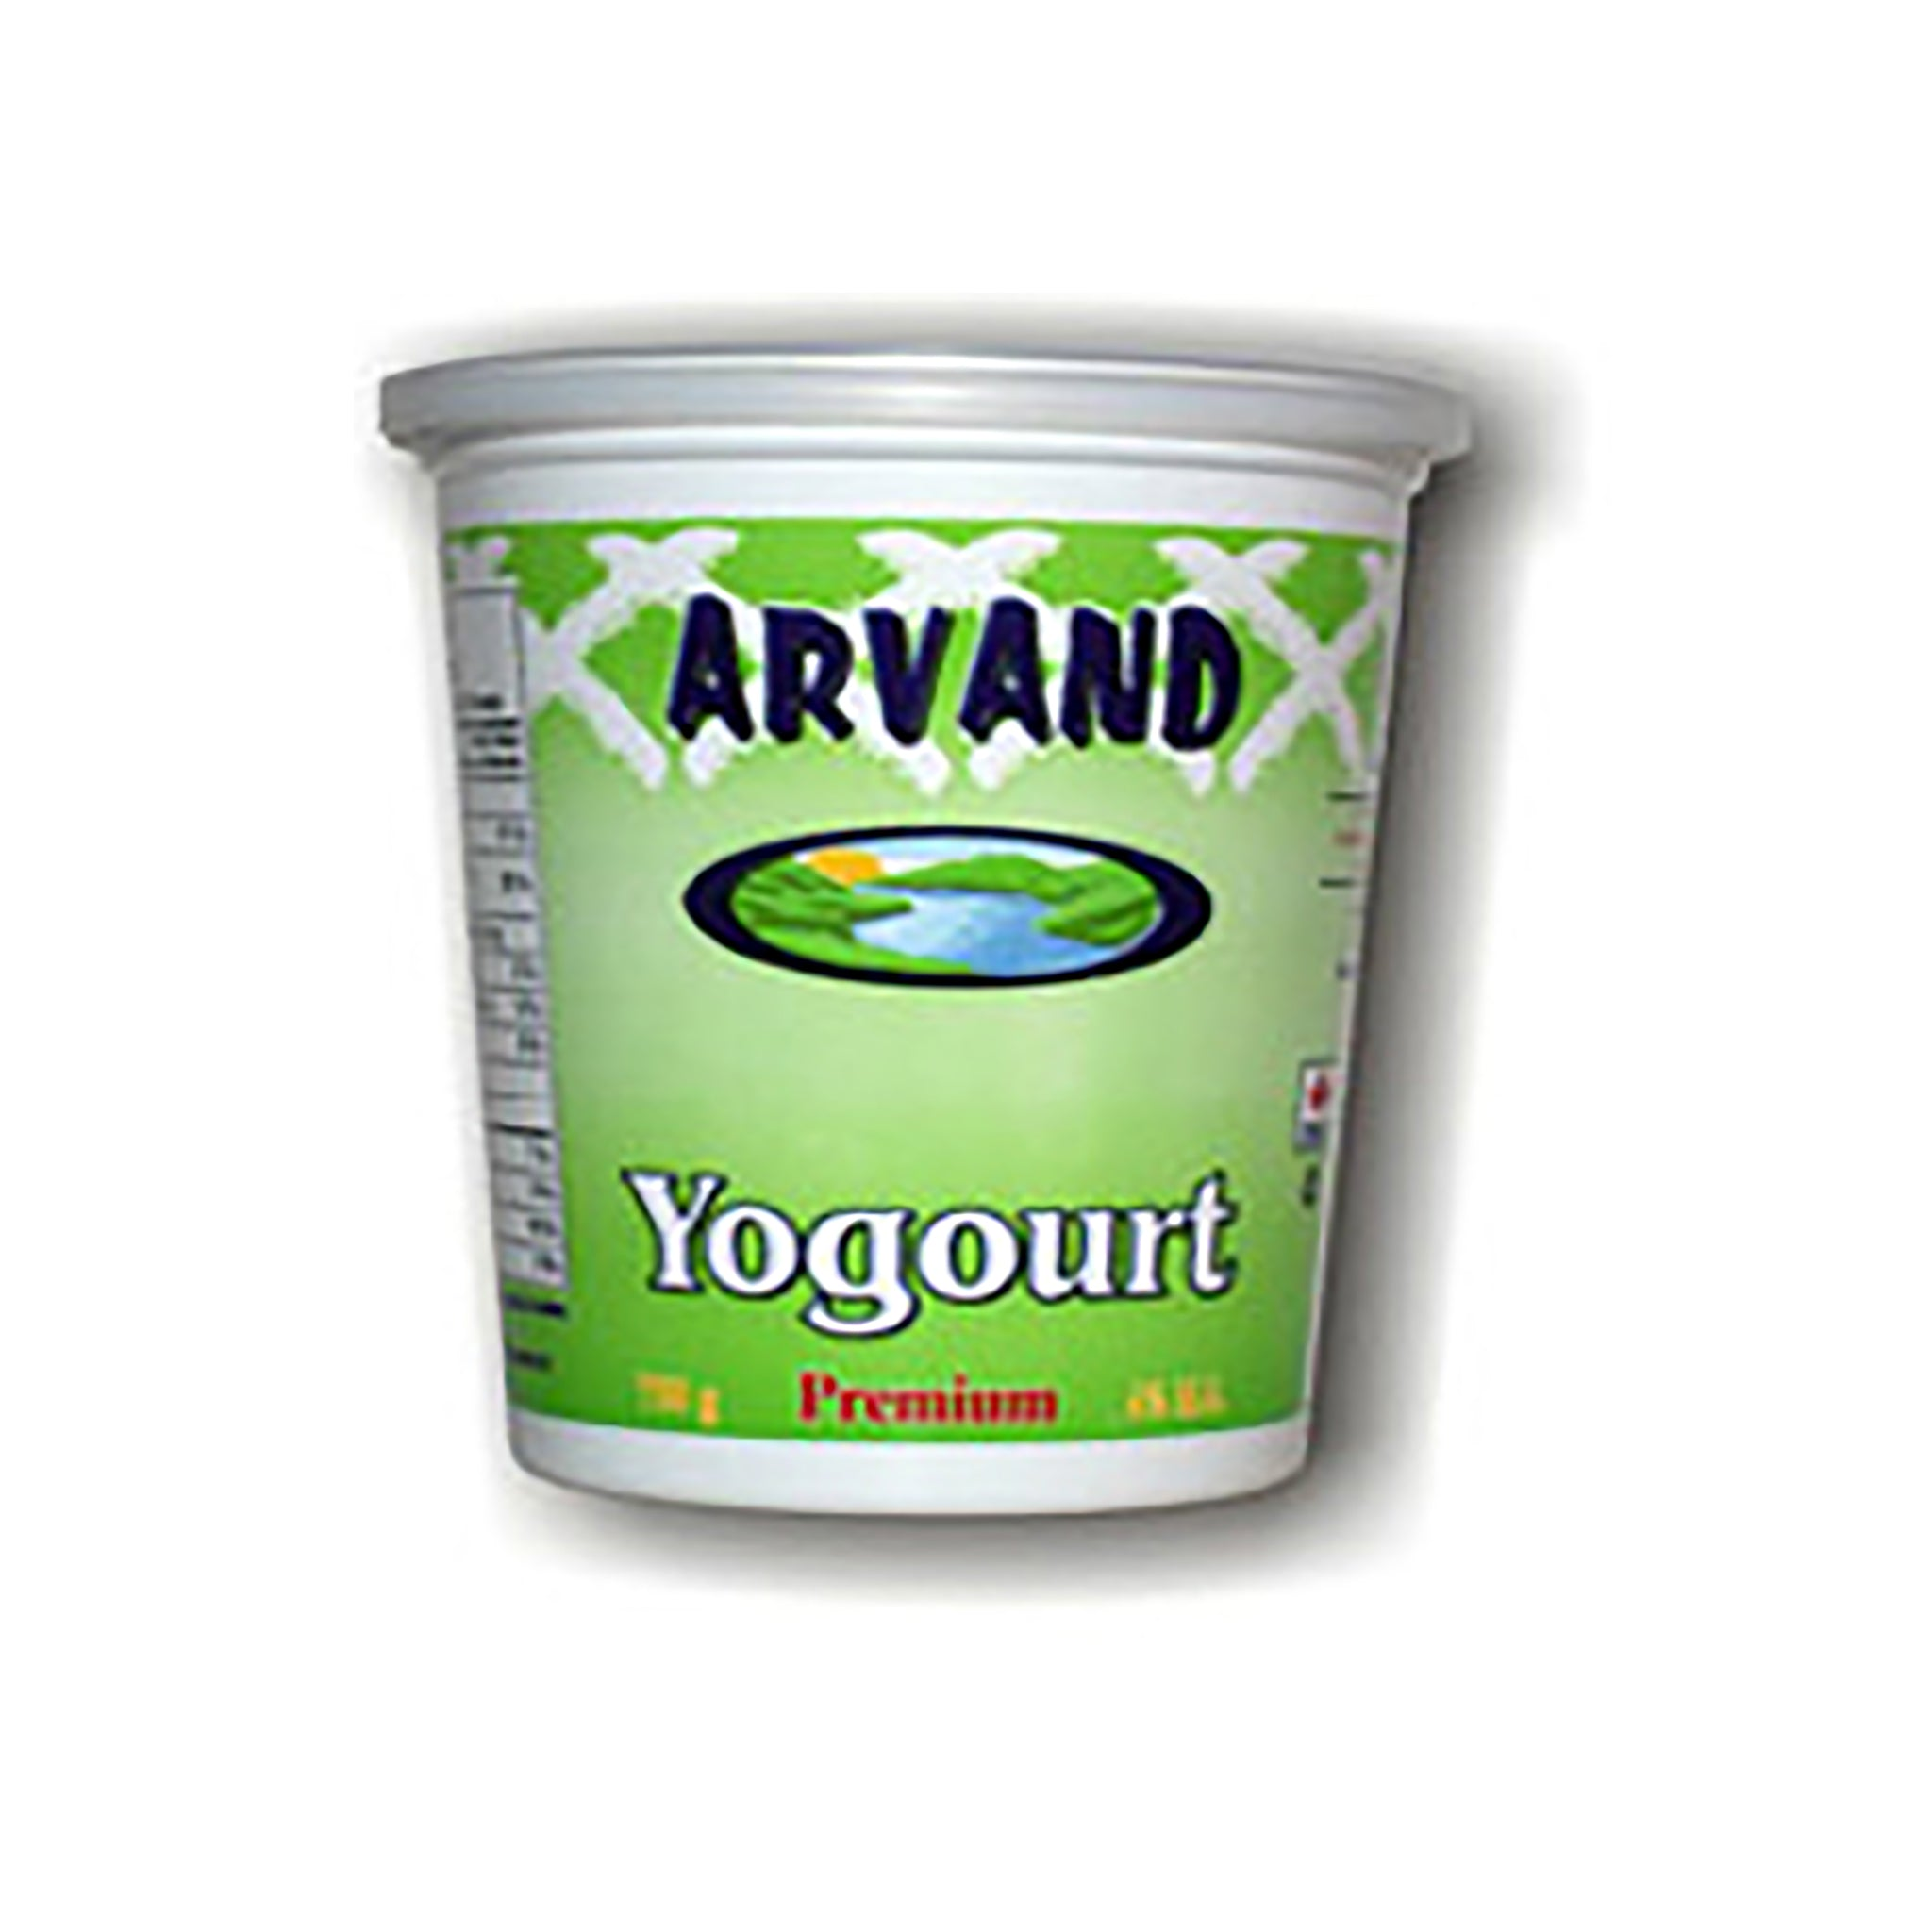 Arvand Plain 6% Yogurt (750g)